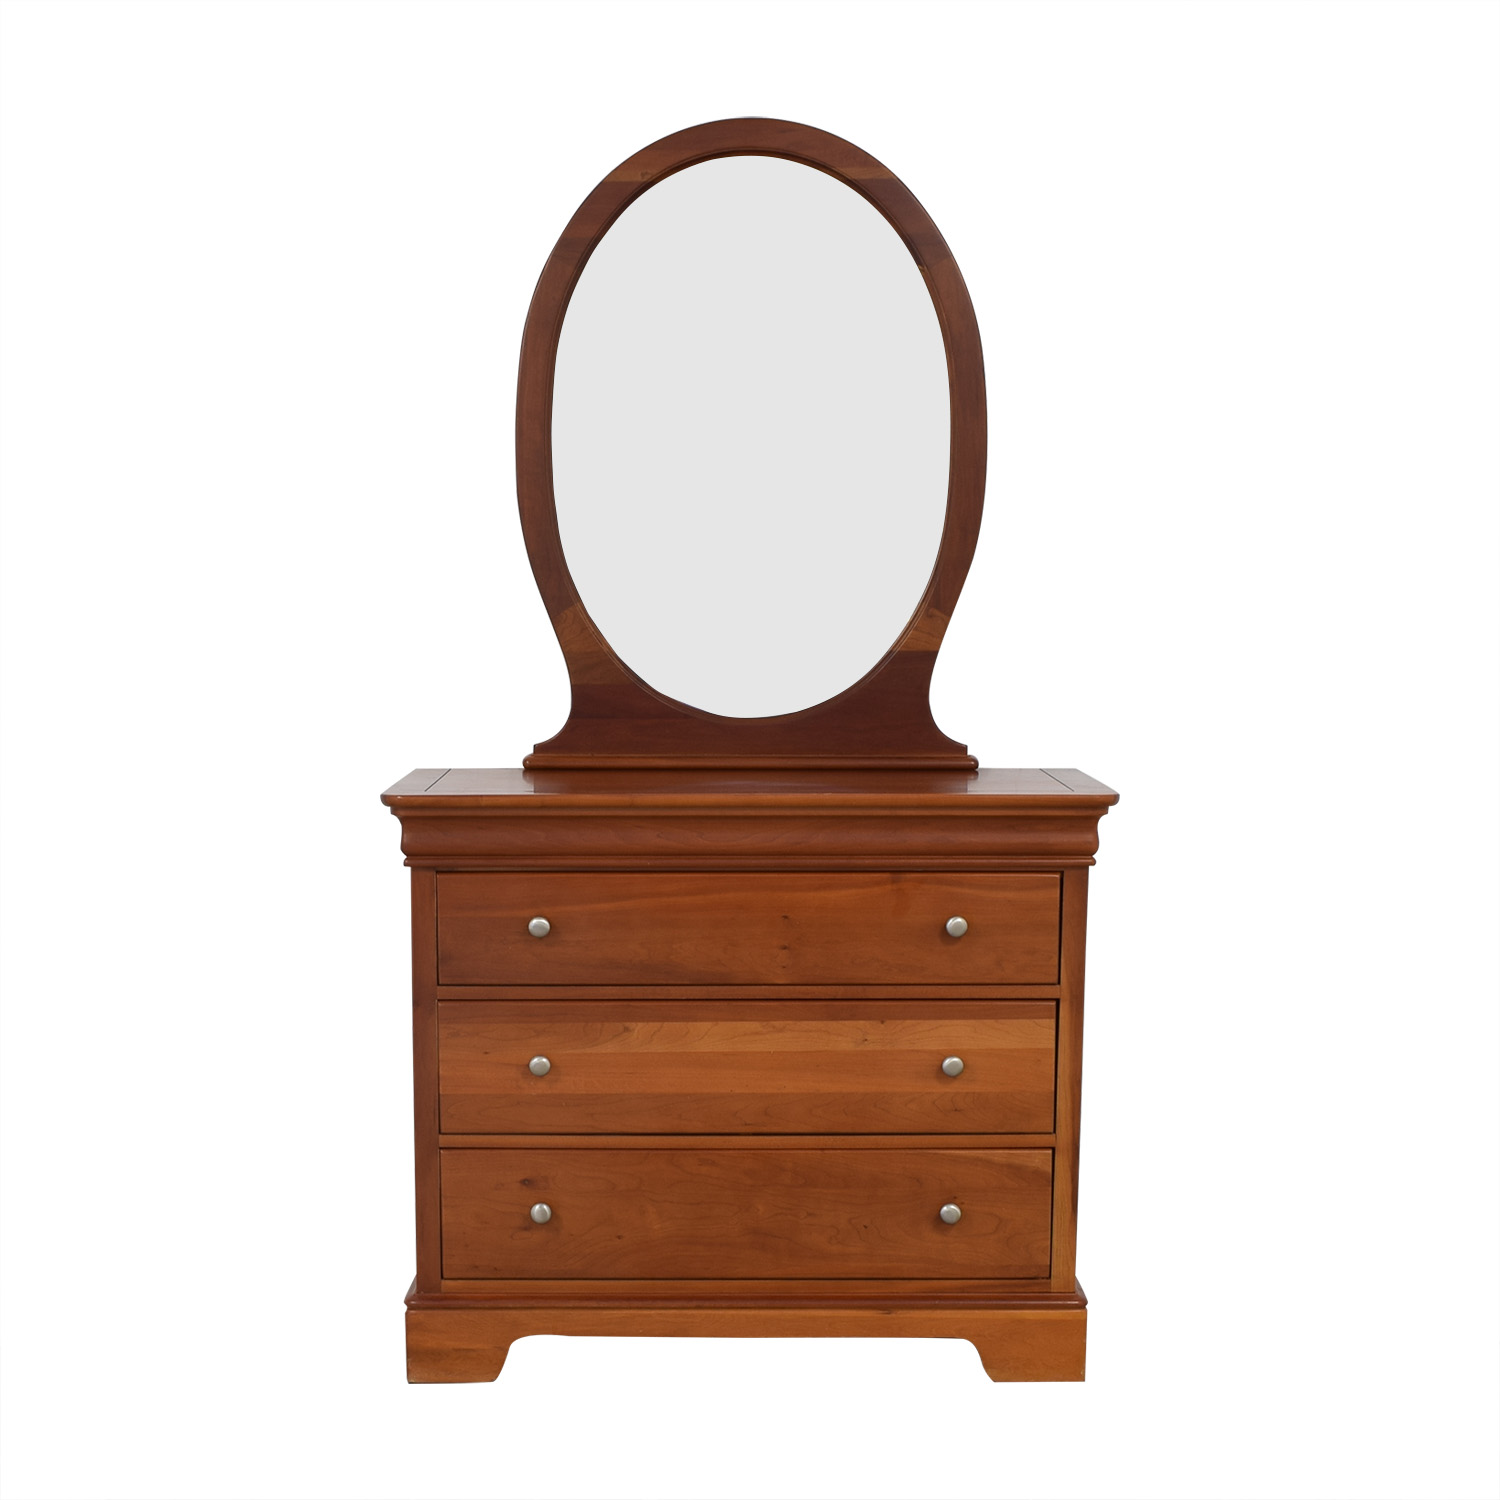 Stanley Furniture Oval Mirror Dresser Stanley Furniture